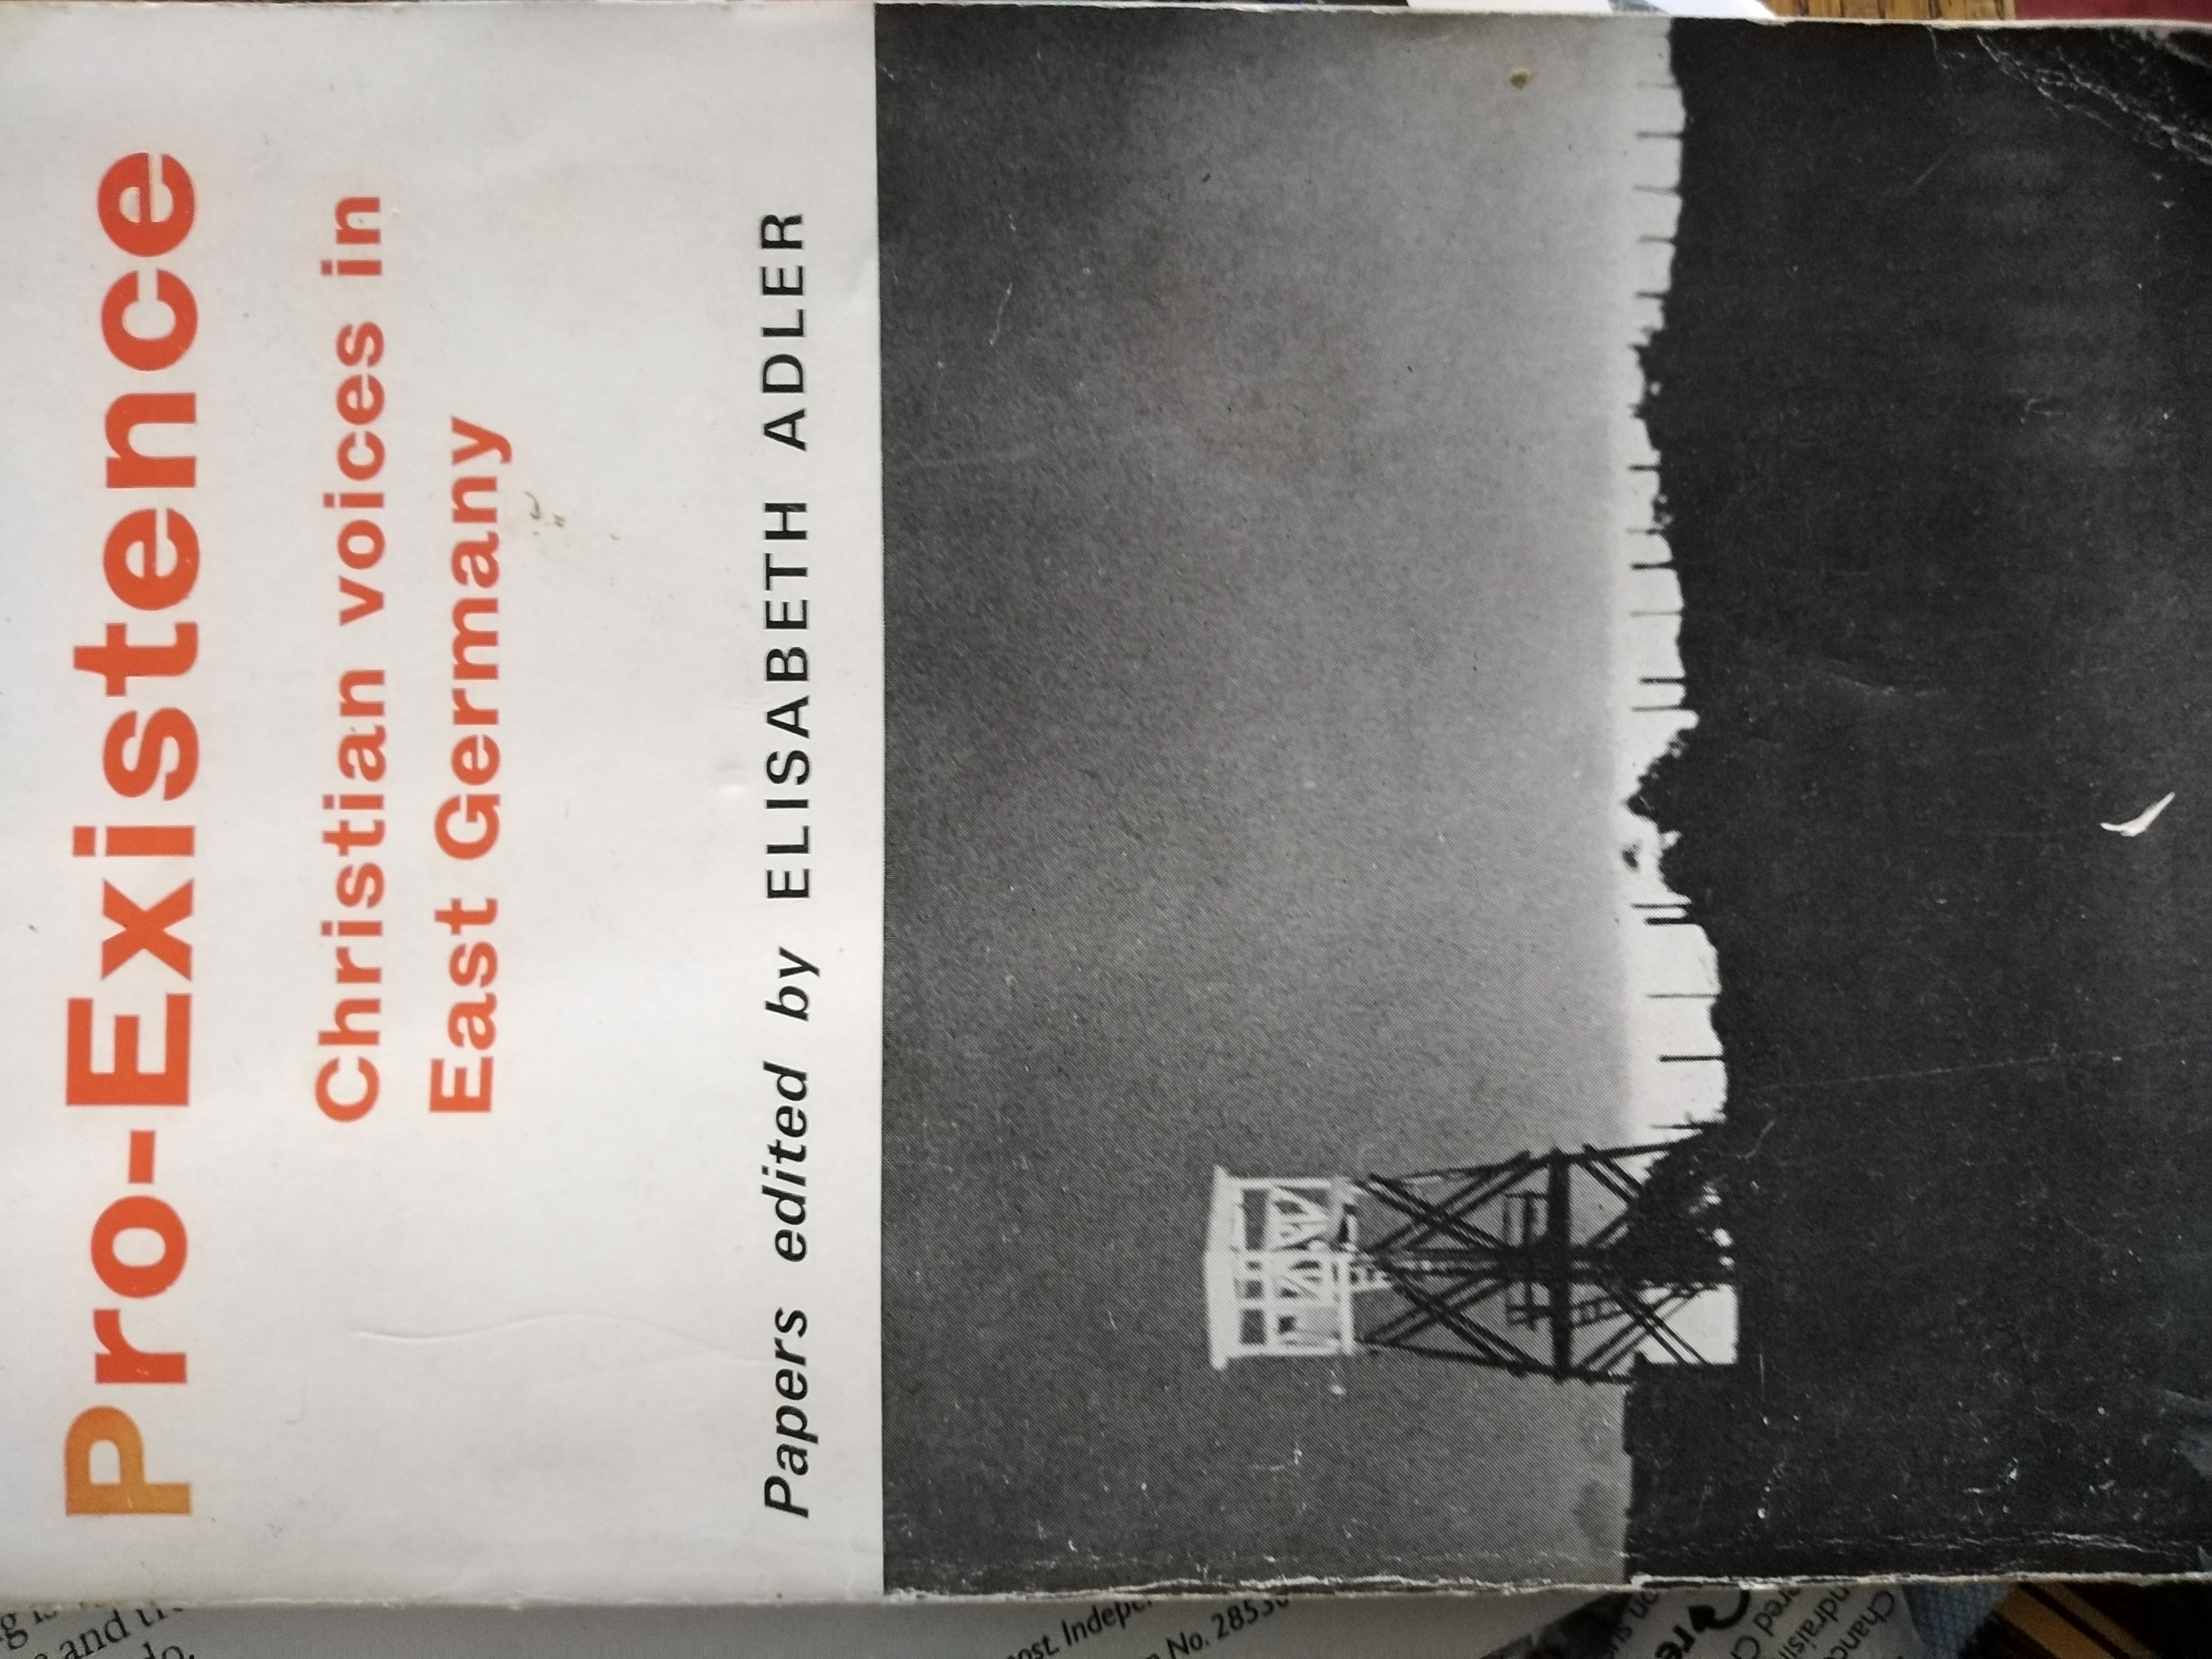 Pro-Existence; Christian voices in East Germany